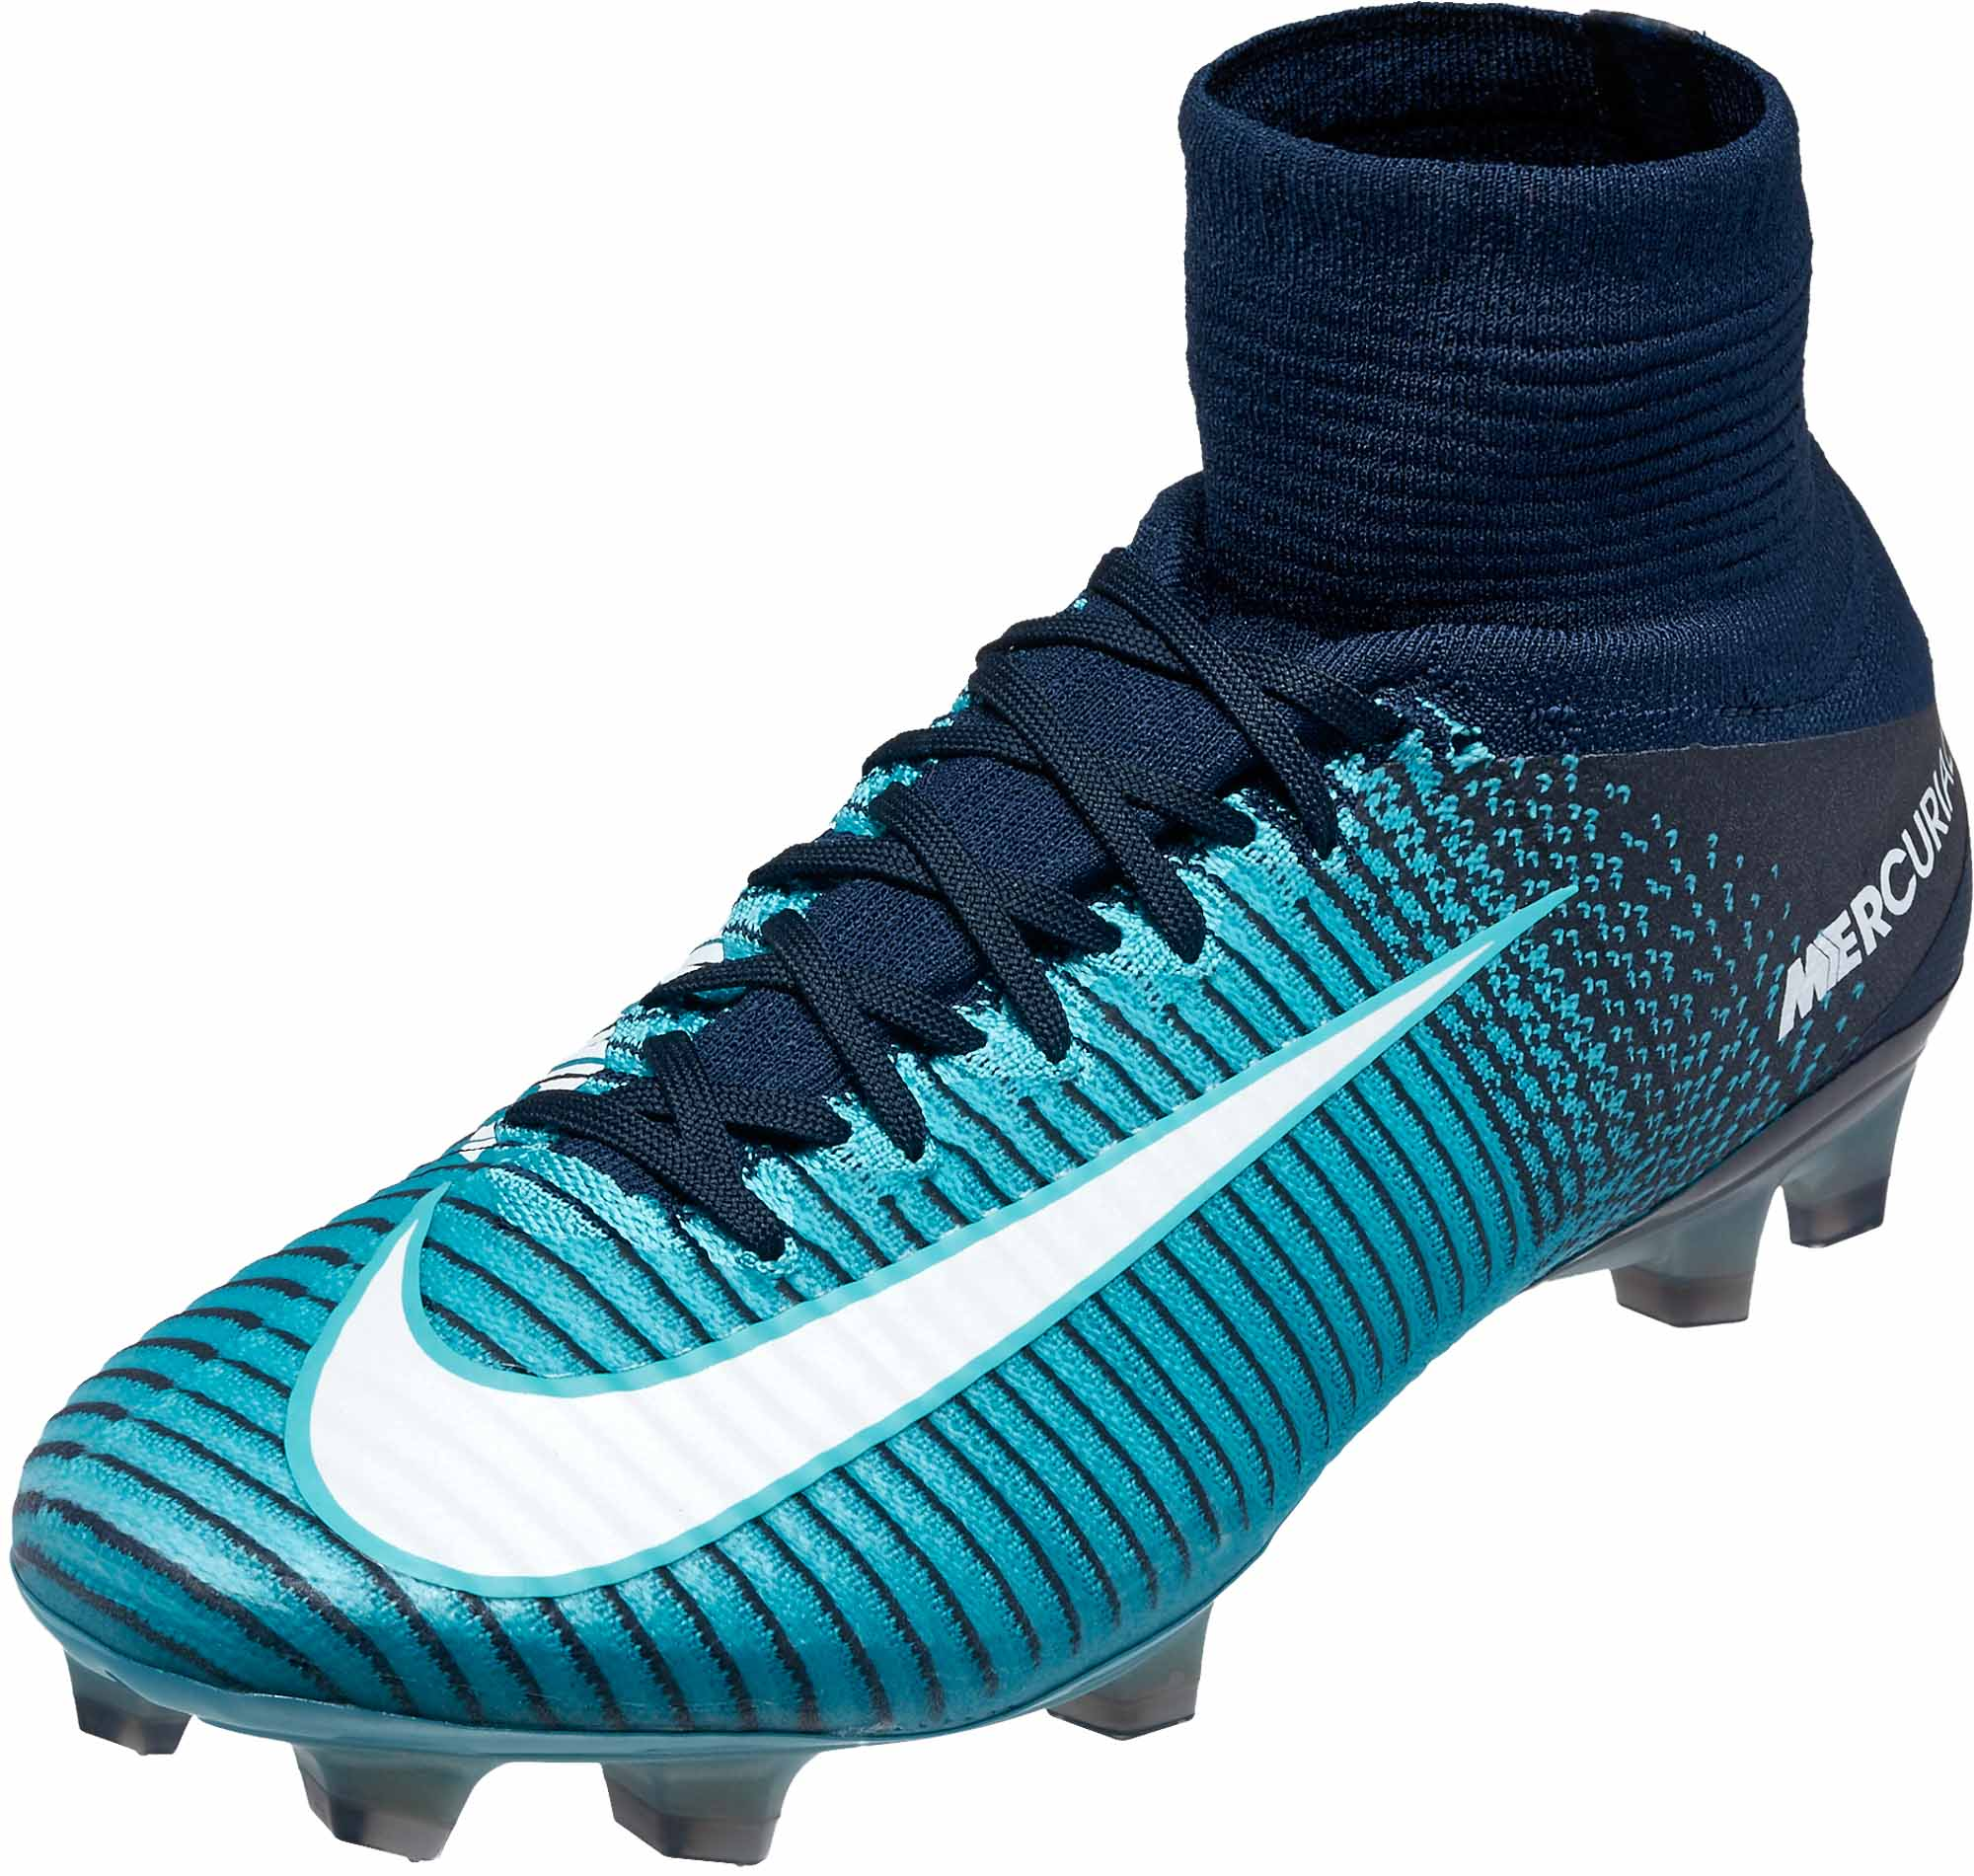 new product dd9f4 aabe0 Nike Mercurial Superfly V FG – Obsidian White